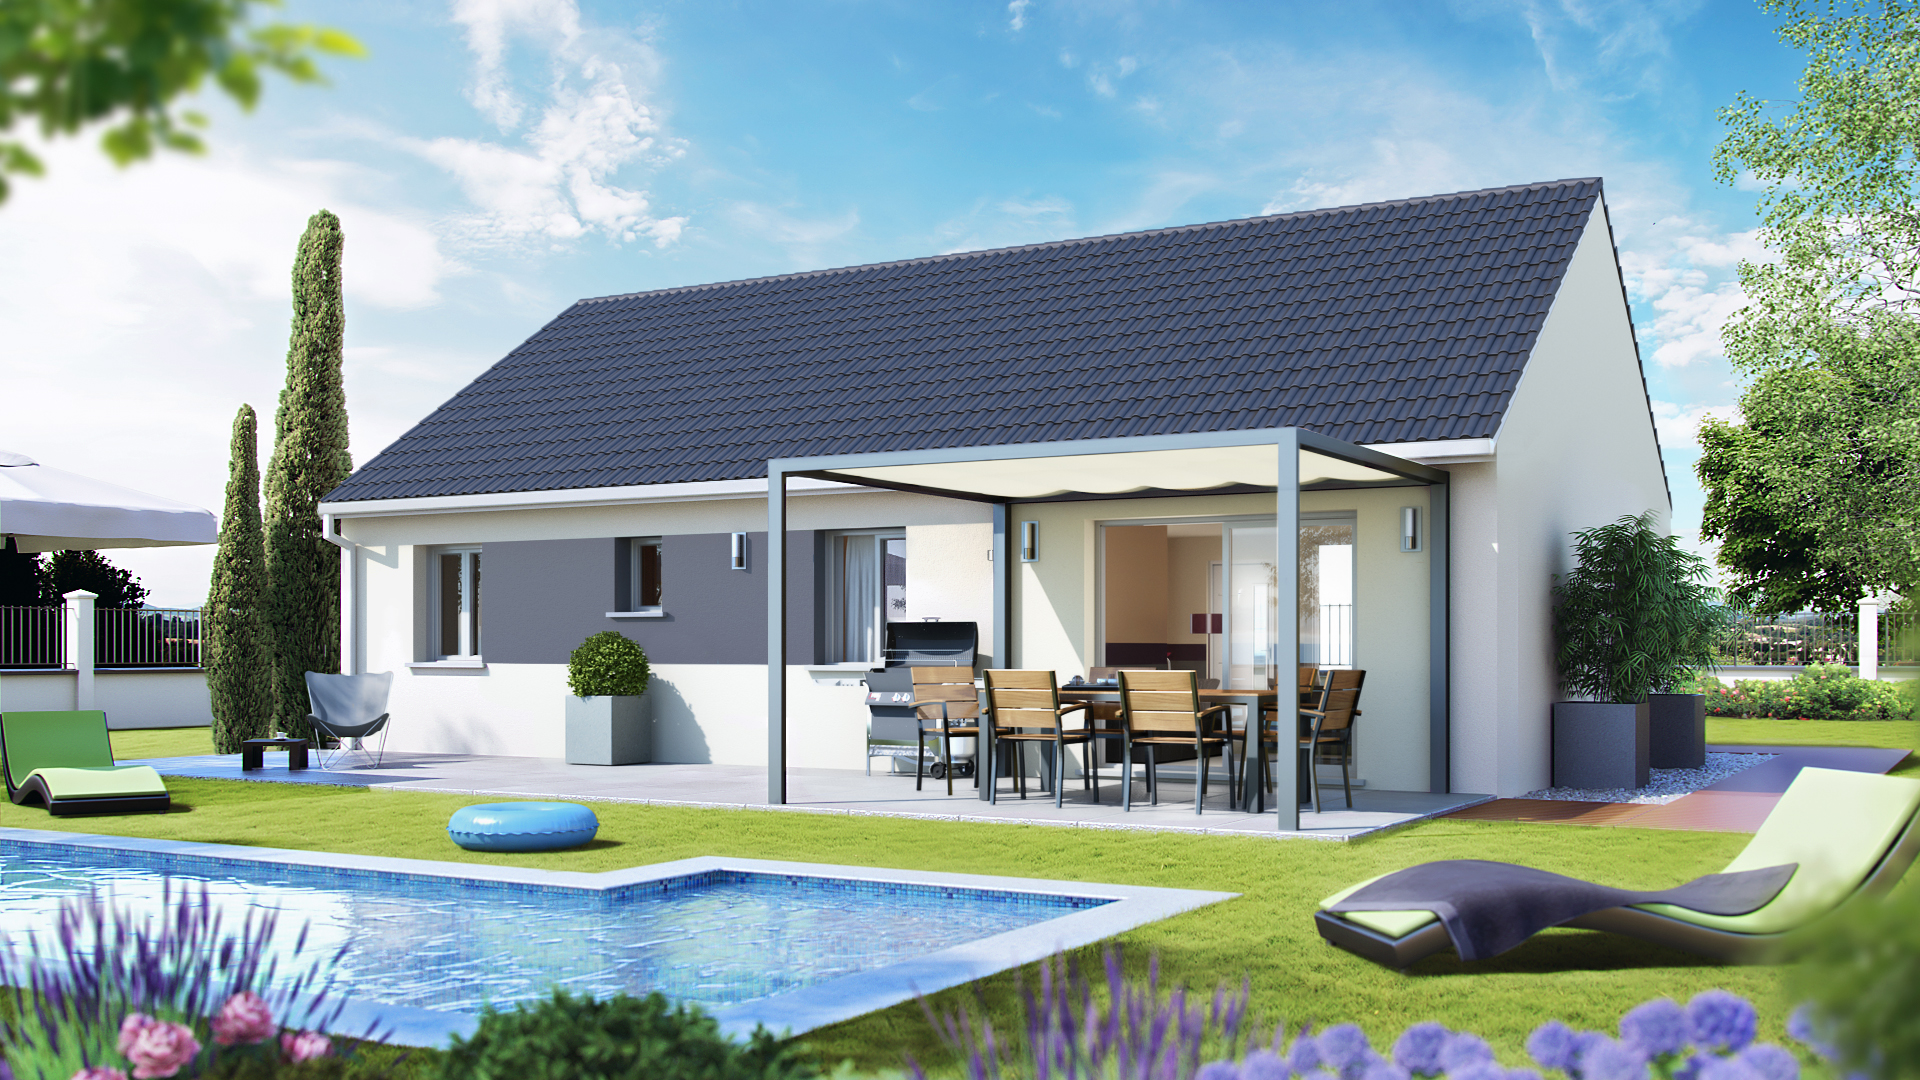 Plan maison villa basse simple maison moderne for Maison simple moderne